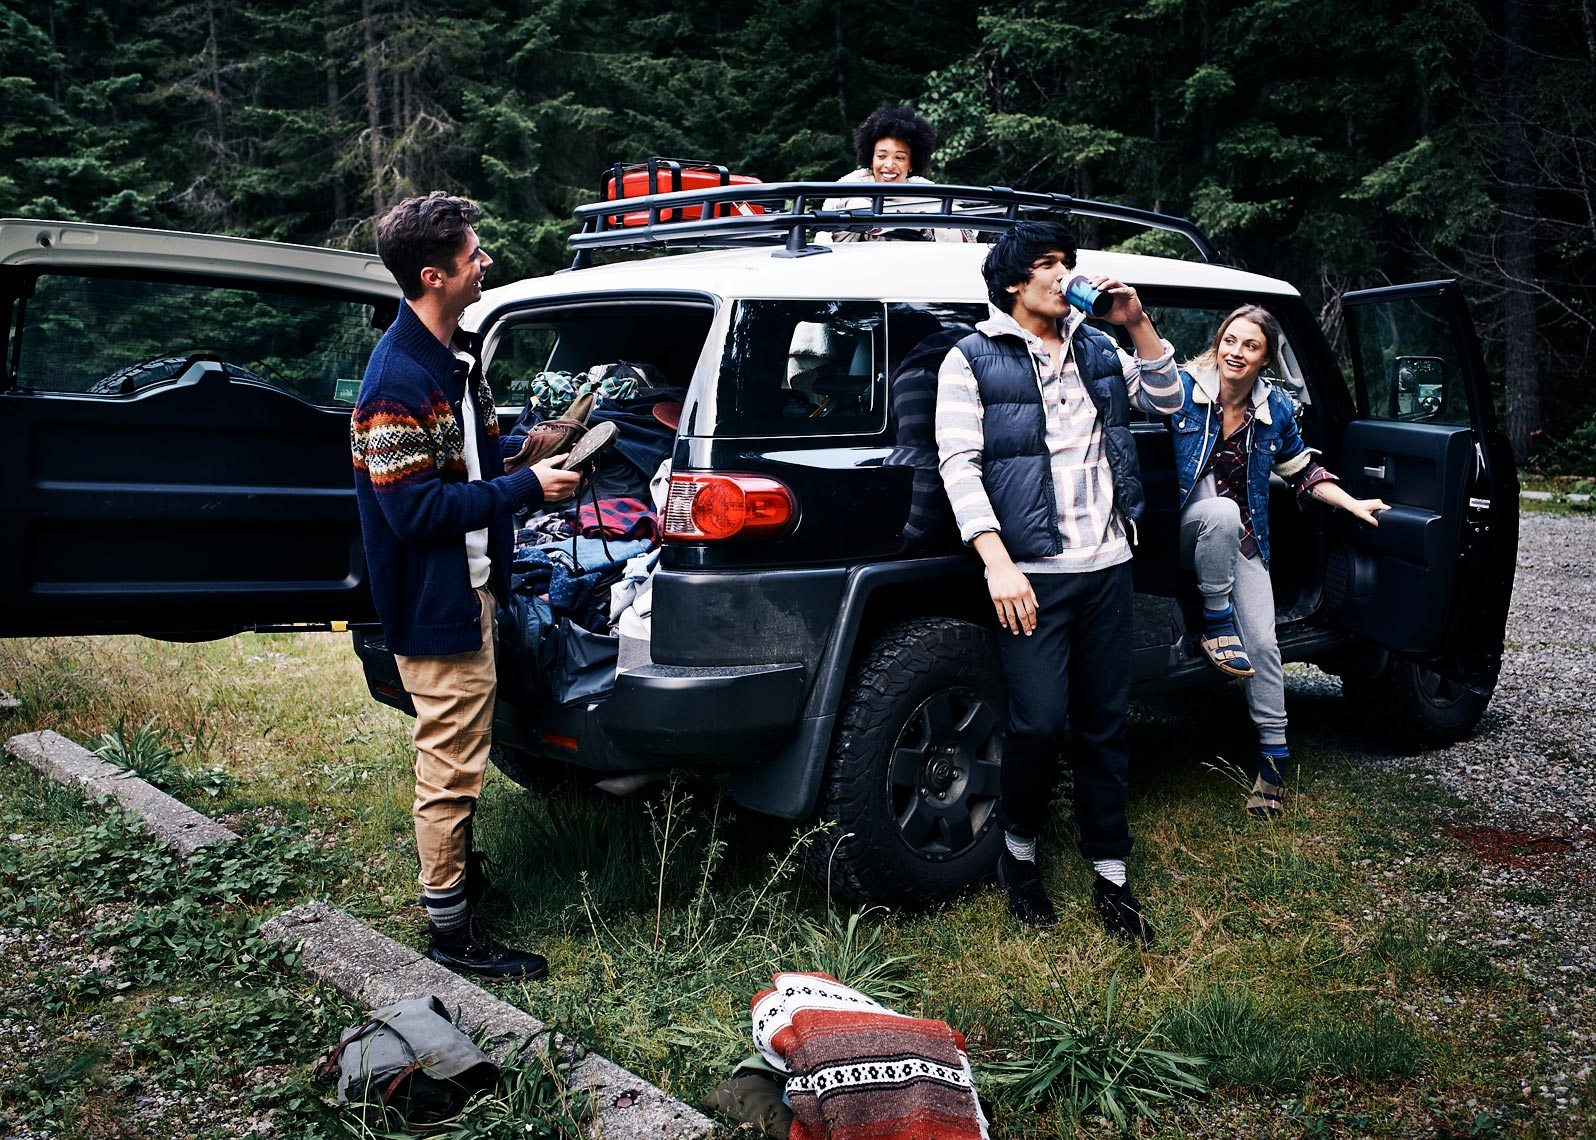 lifestyle photoshoot captures hanging out in the Pacific Northwest